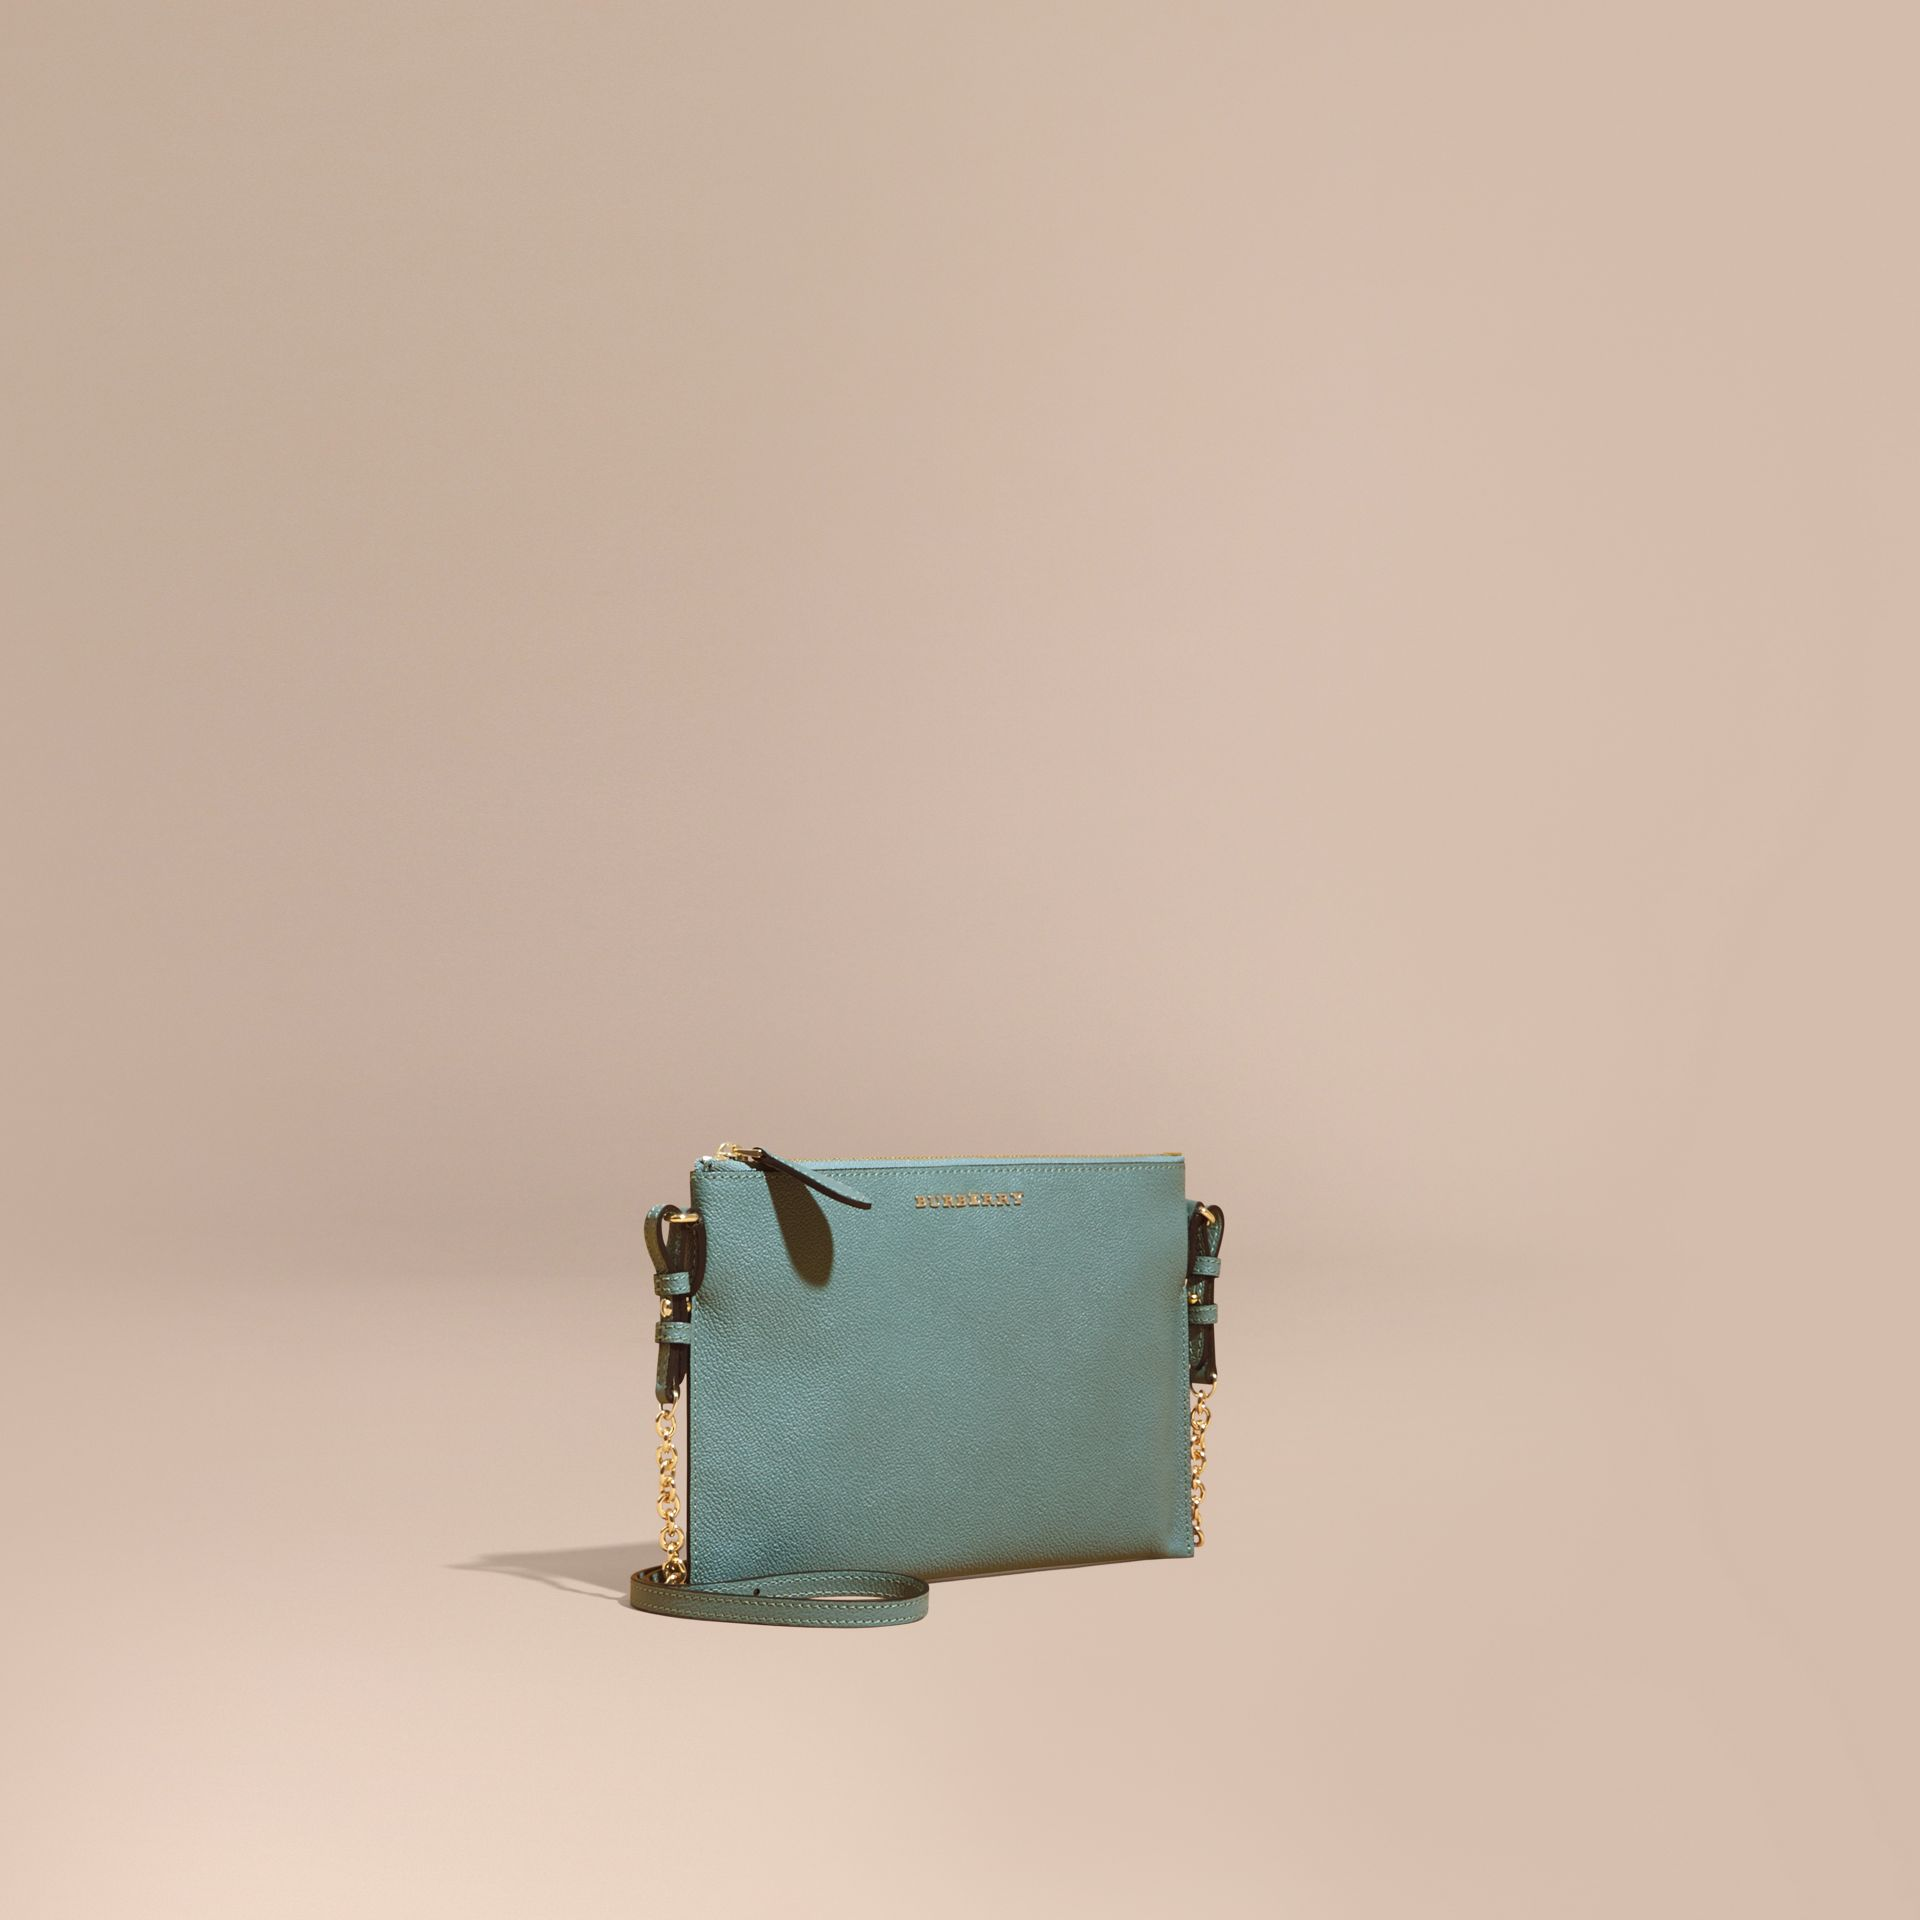 Leather Clutch Bag with Check Lining in Eucalyptus Green - Women | Burberry - gallery image 1